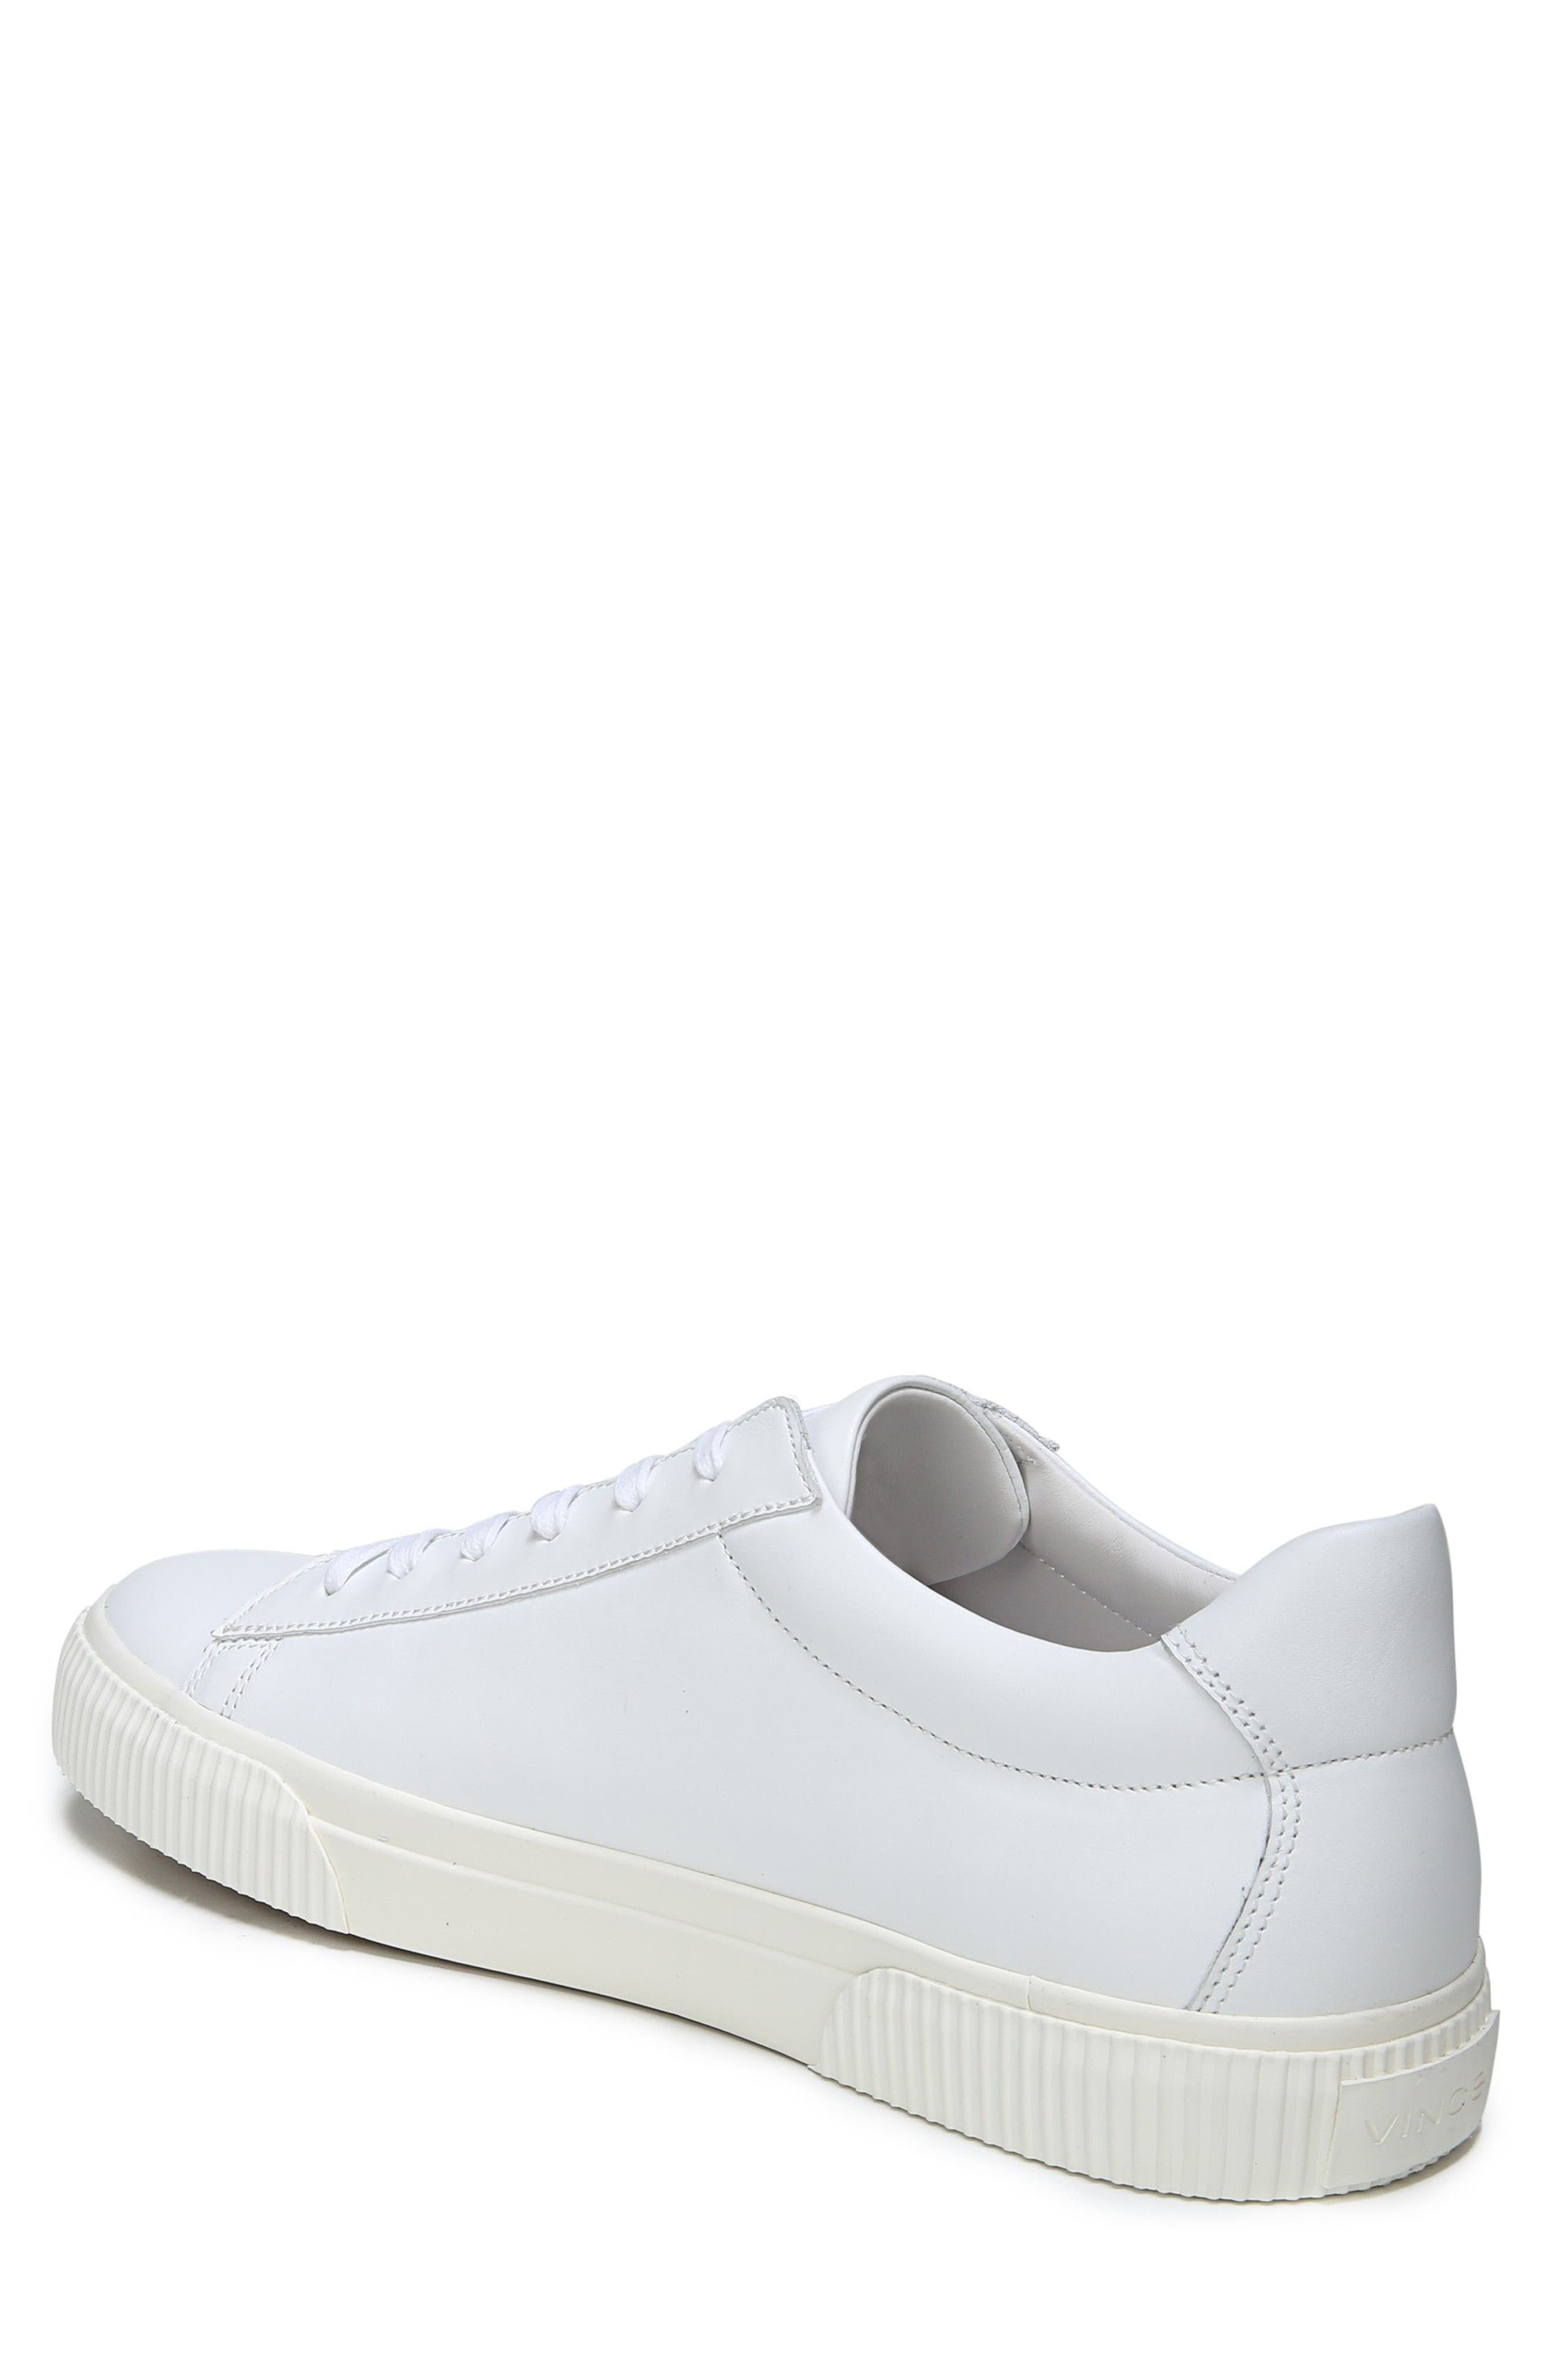 Kurtis Low Top Sneaker,                             Alternate thumbnail 2, color,                             WHITE